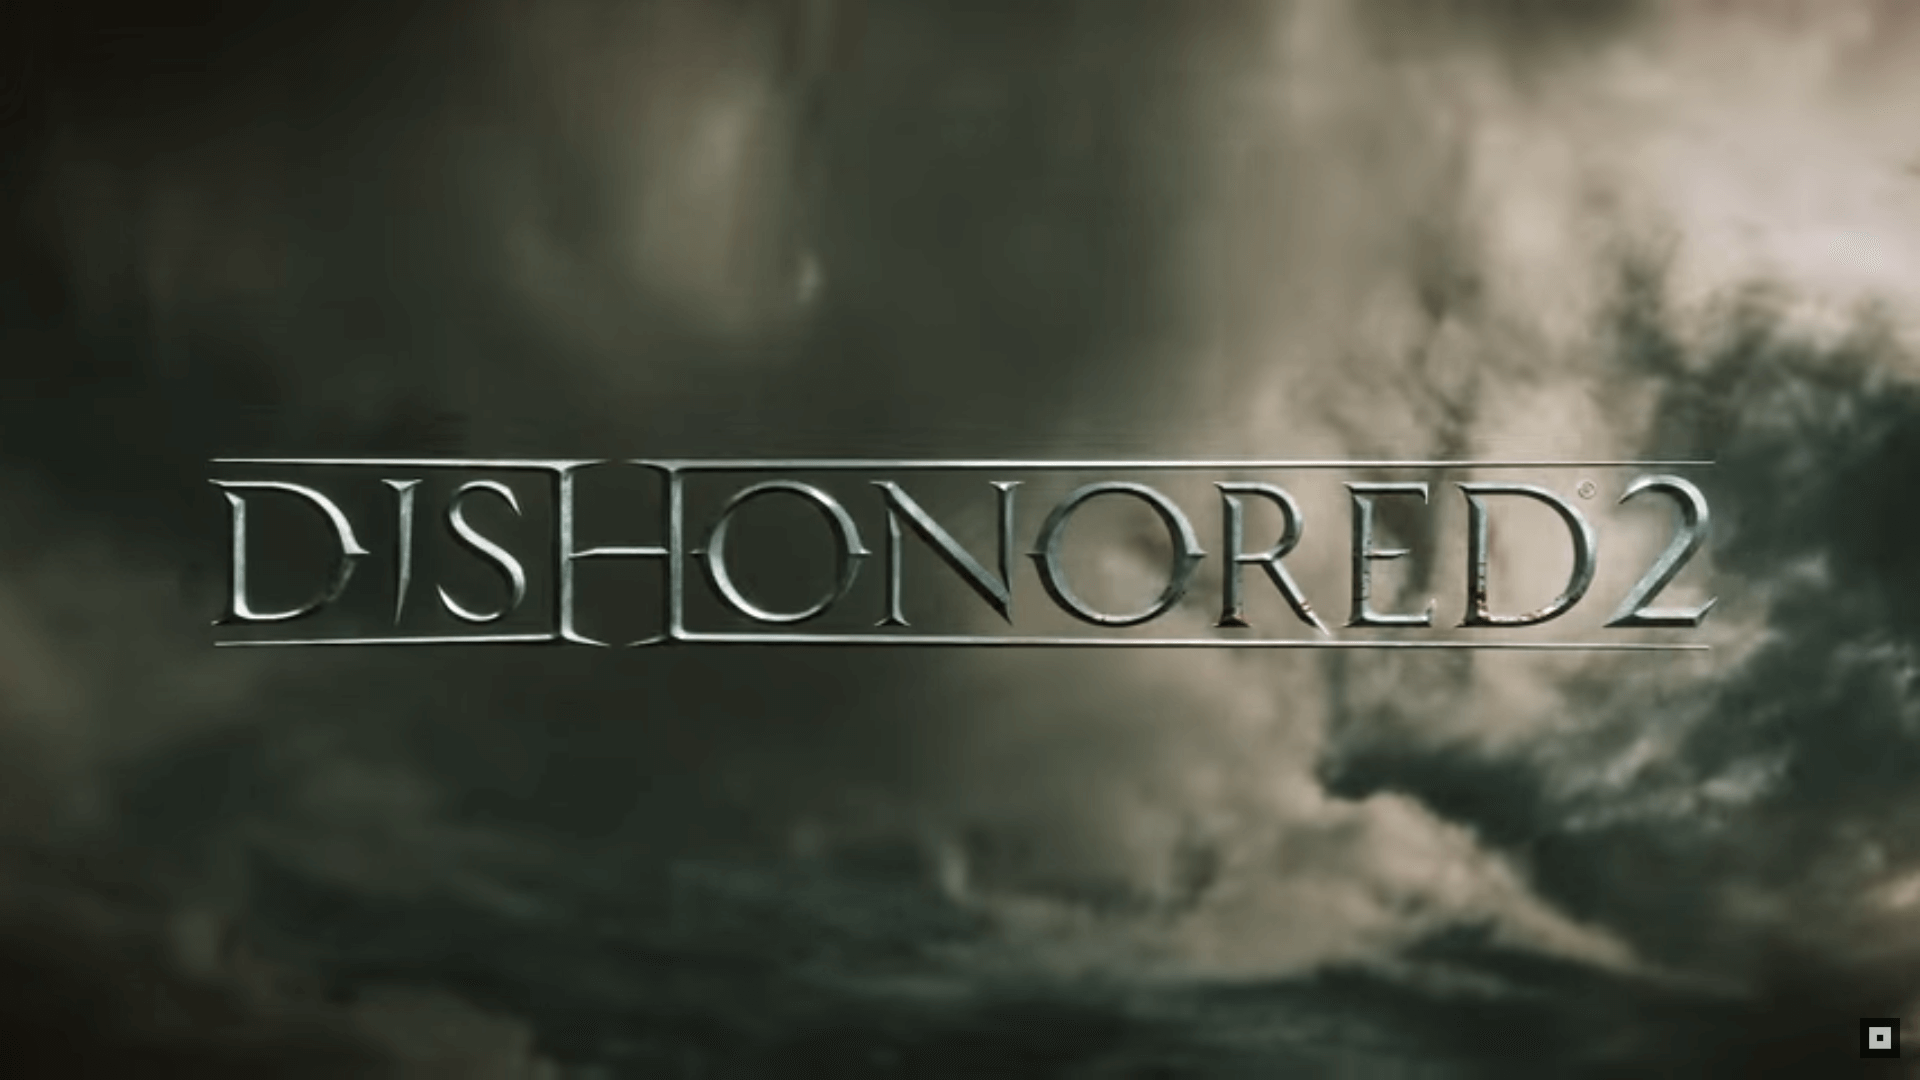 Dishonored 2 Download Crack Free + Torrent